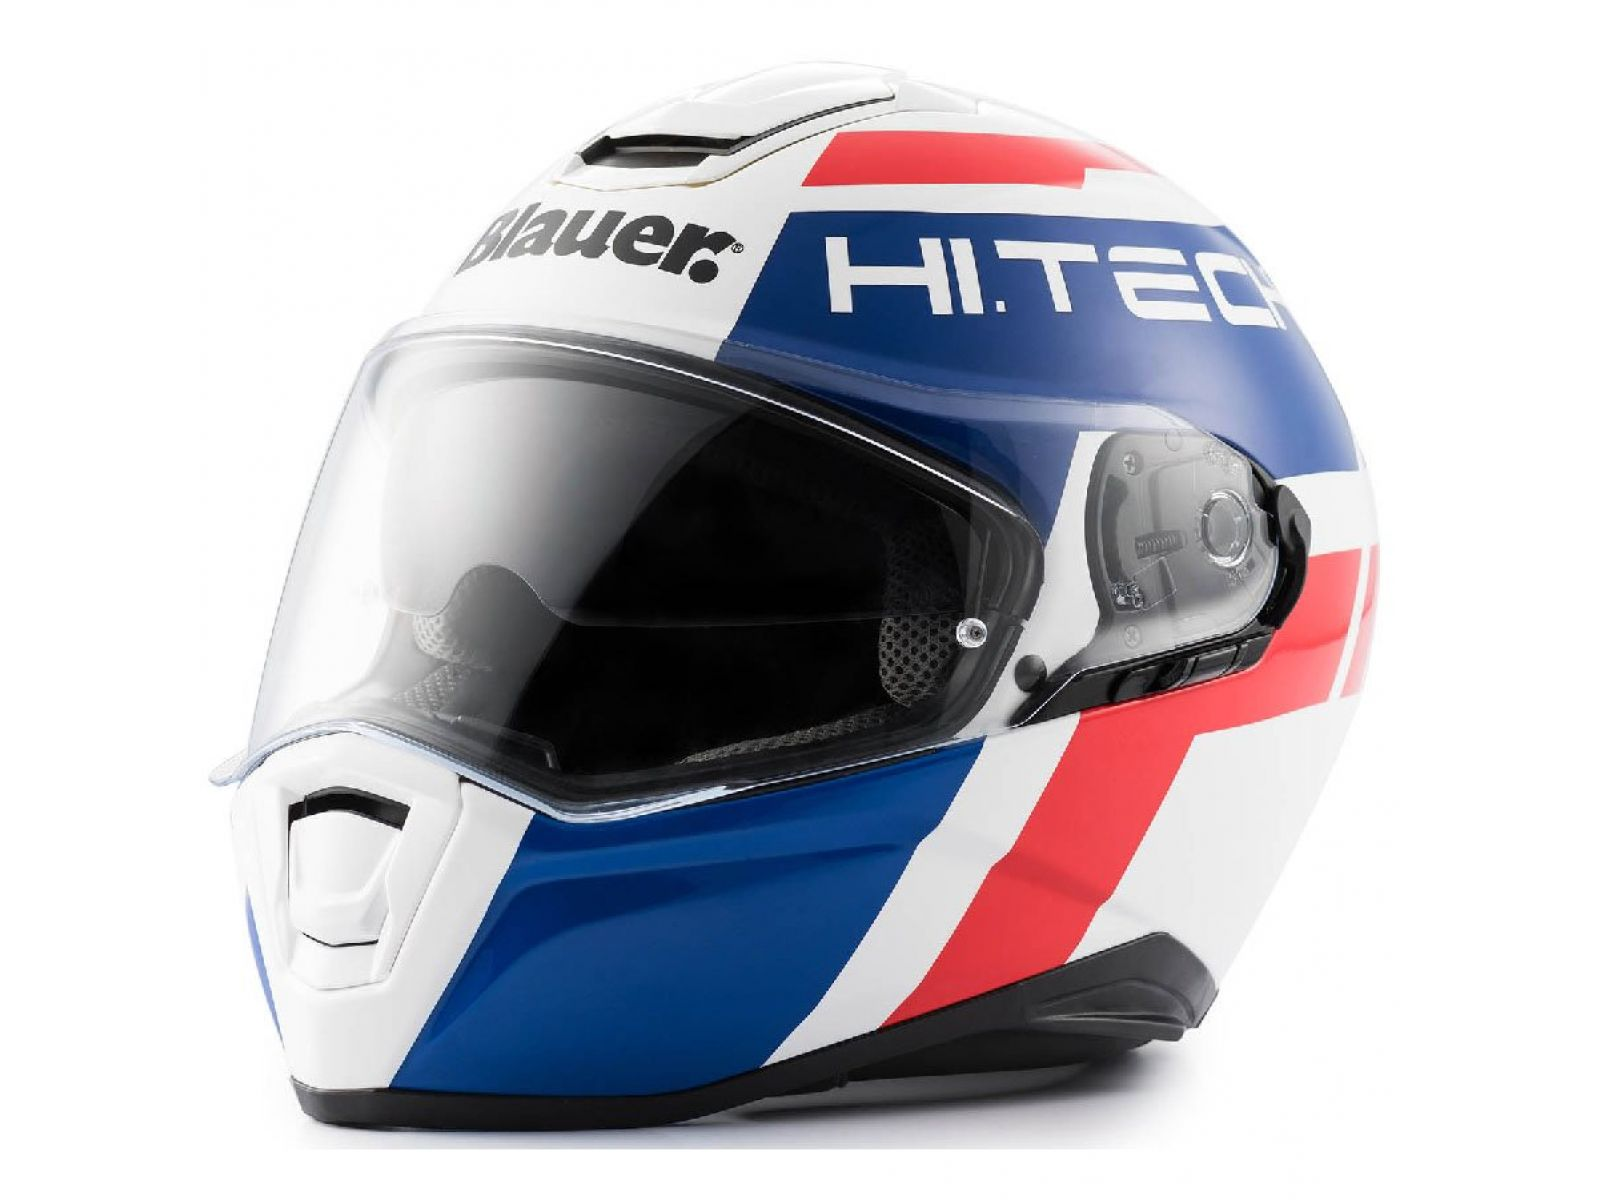 Мотошлем Blauer H.T. Force One 800 White Blue Red